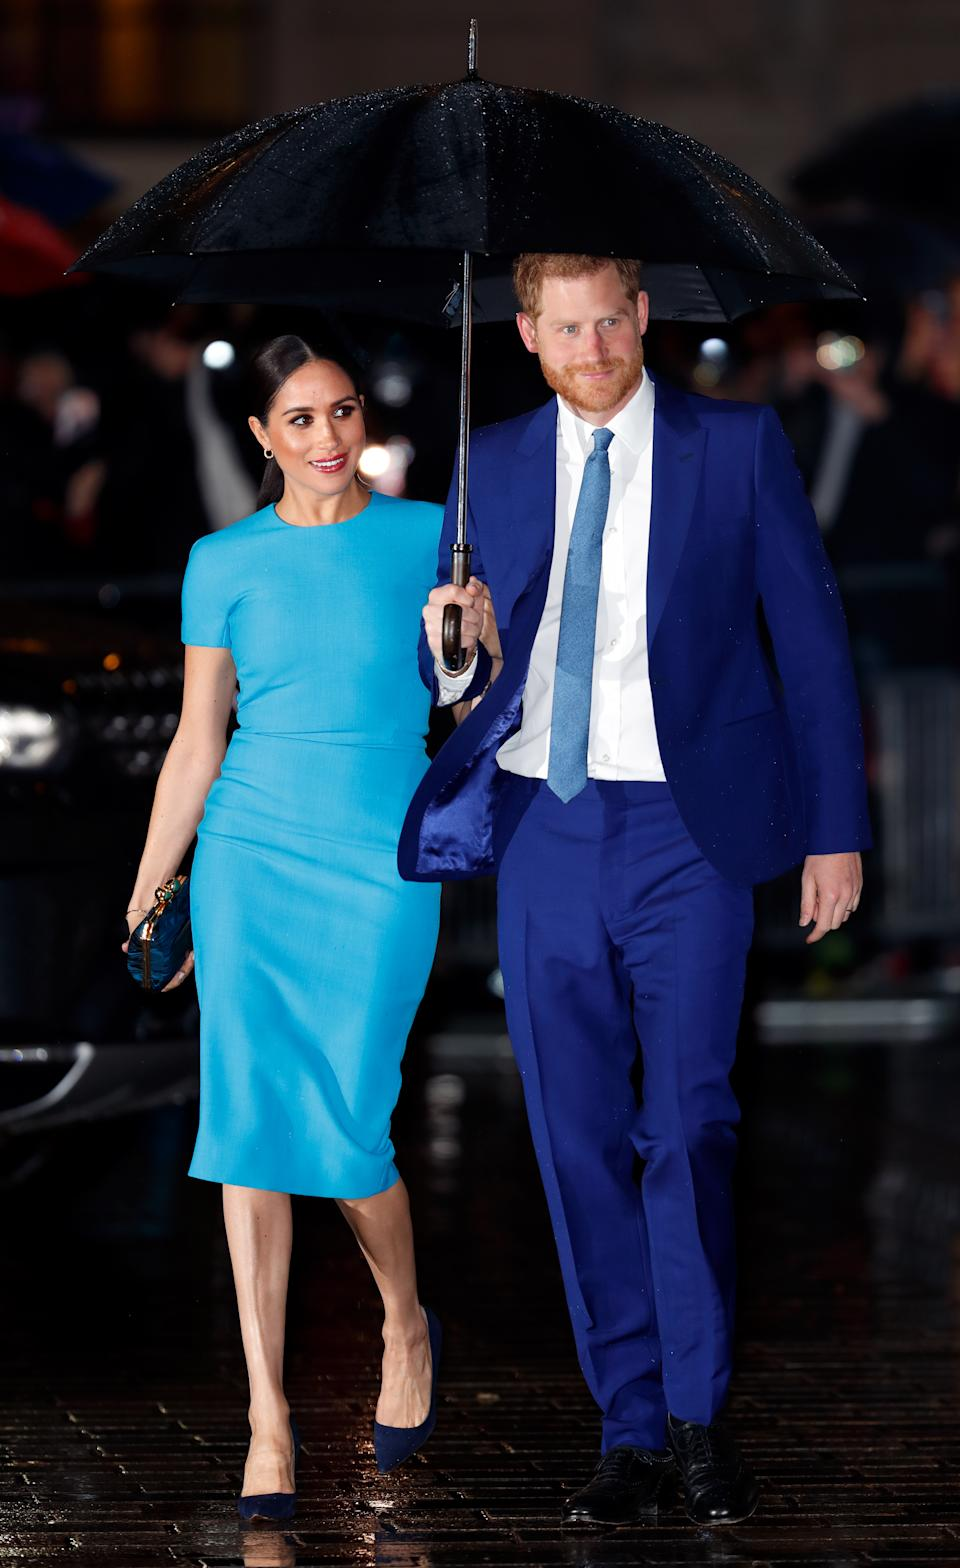 Prince Harry holds an umbrella over himself and Meghan Markle